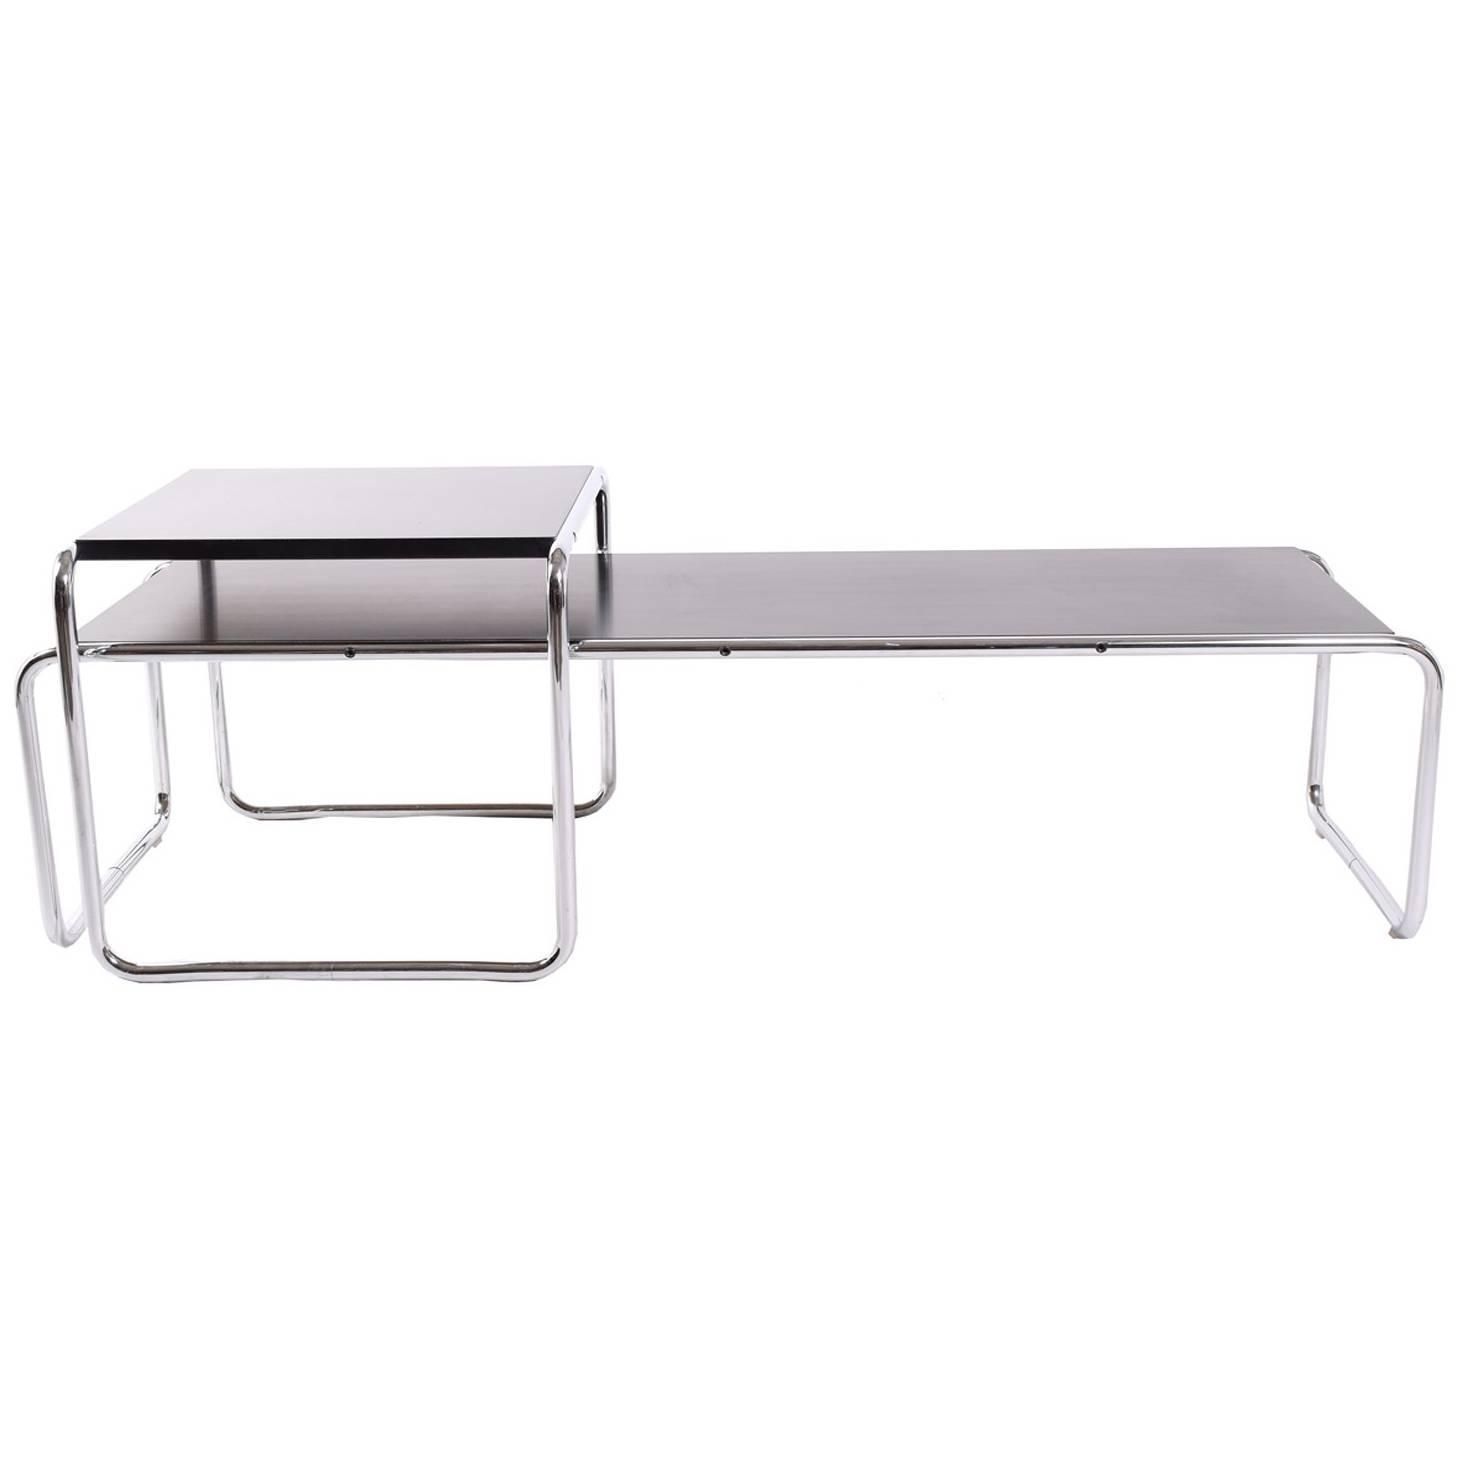 Laccio tables design marcel breuer 1925 for knoll at 1stdibs geotapseo Images